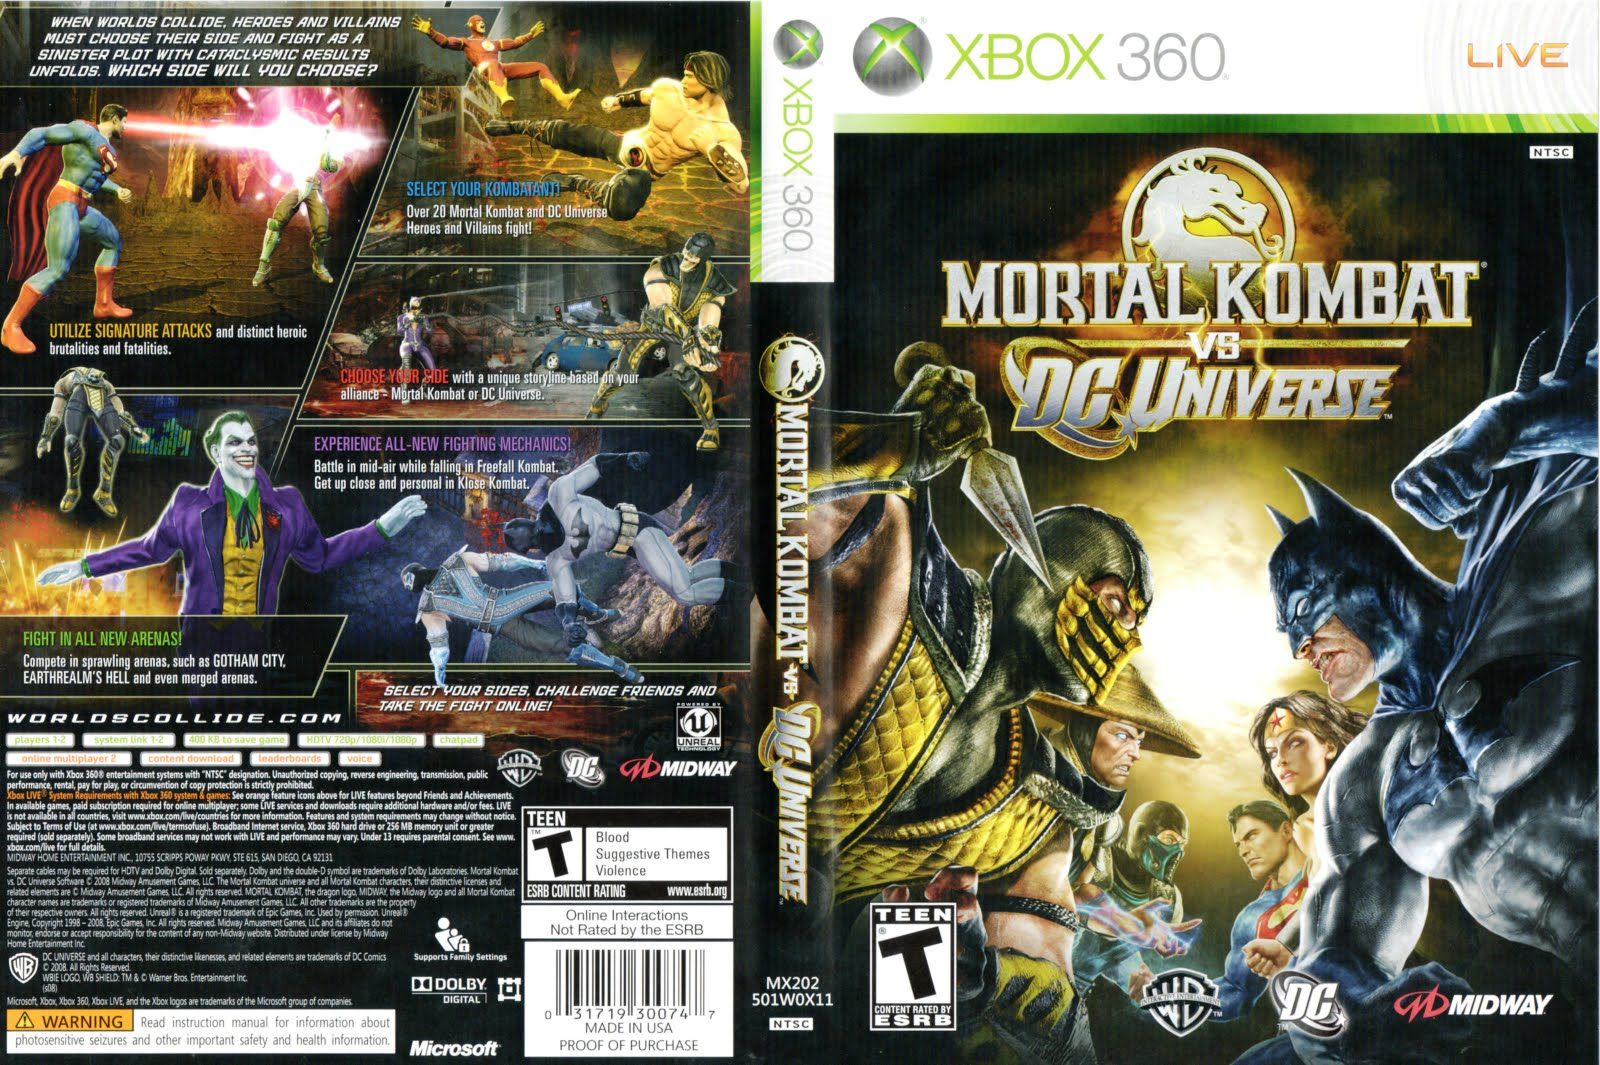 image regarding Printable Video Game Covers named xbox 360 activity handles a-z - Google Seem Xbox 360 Xbox